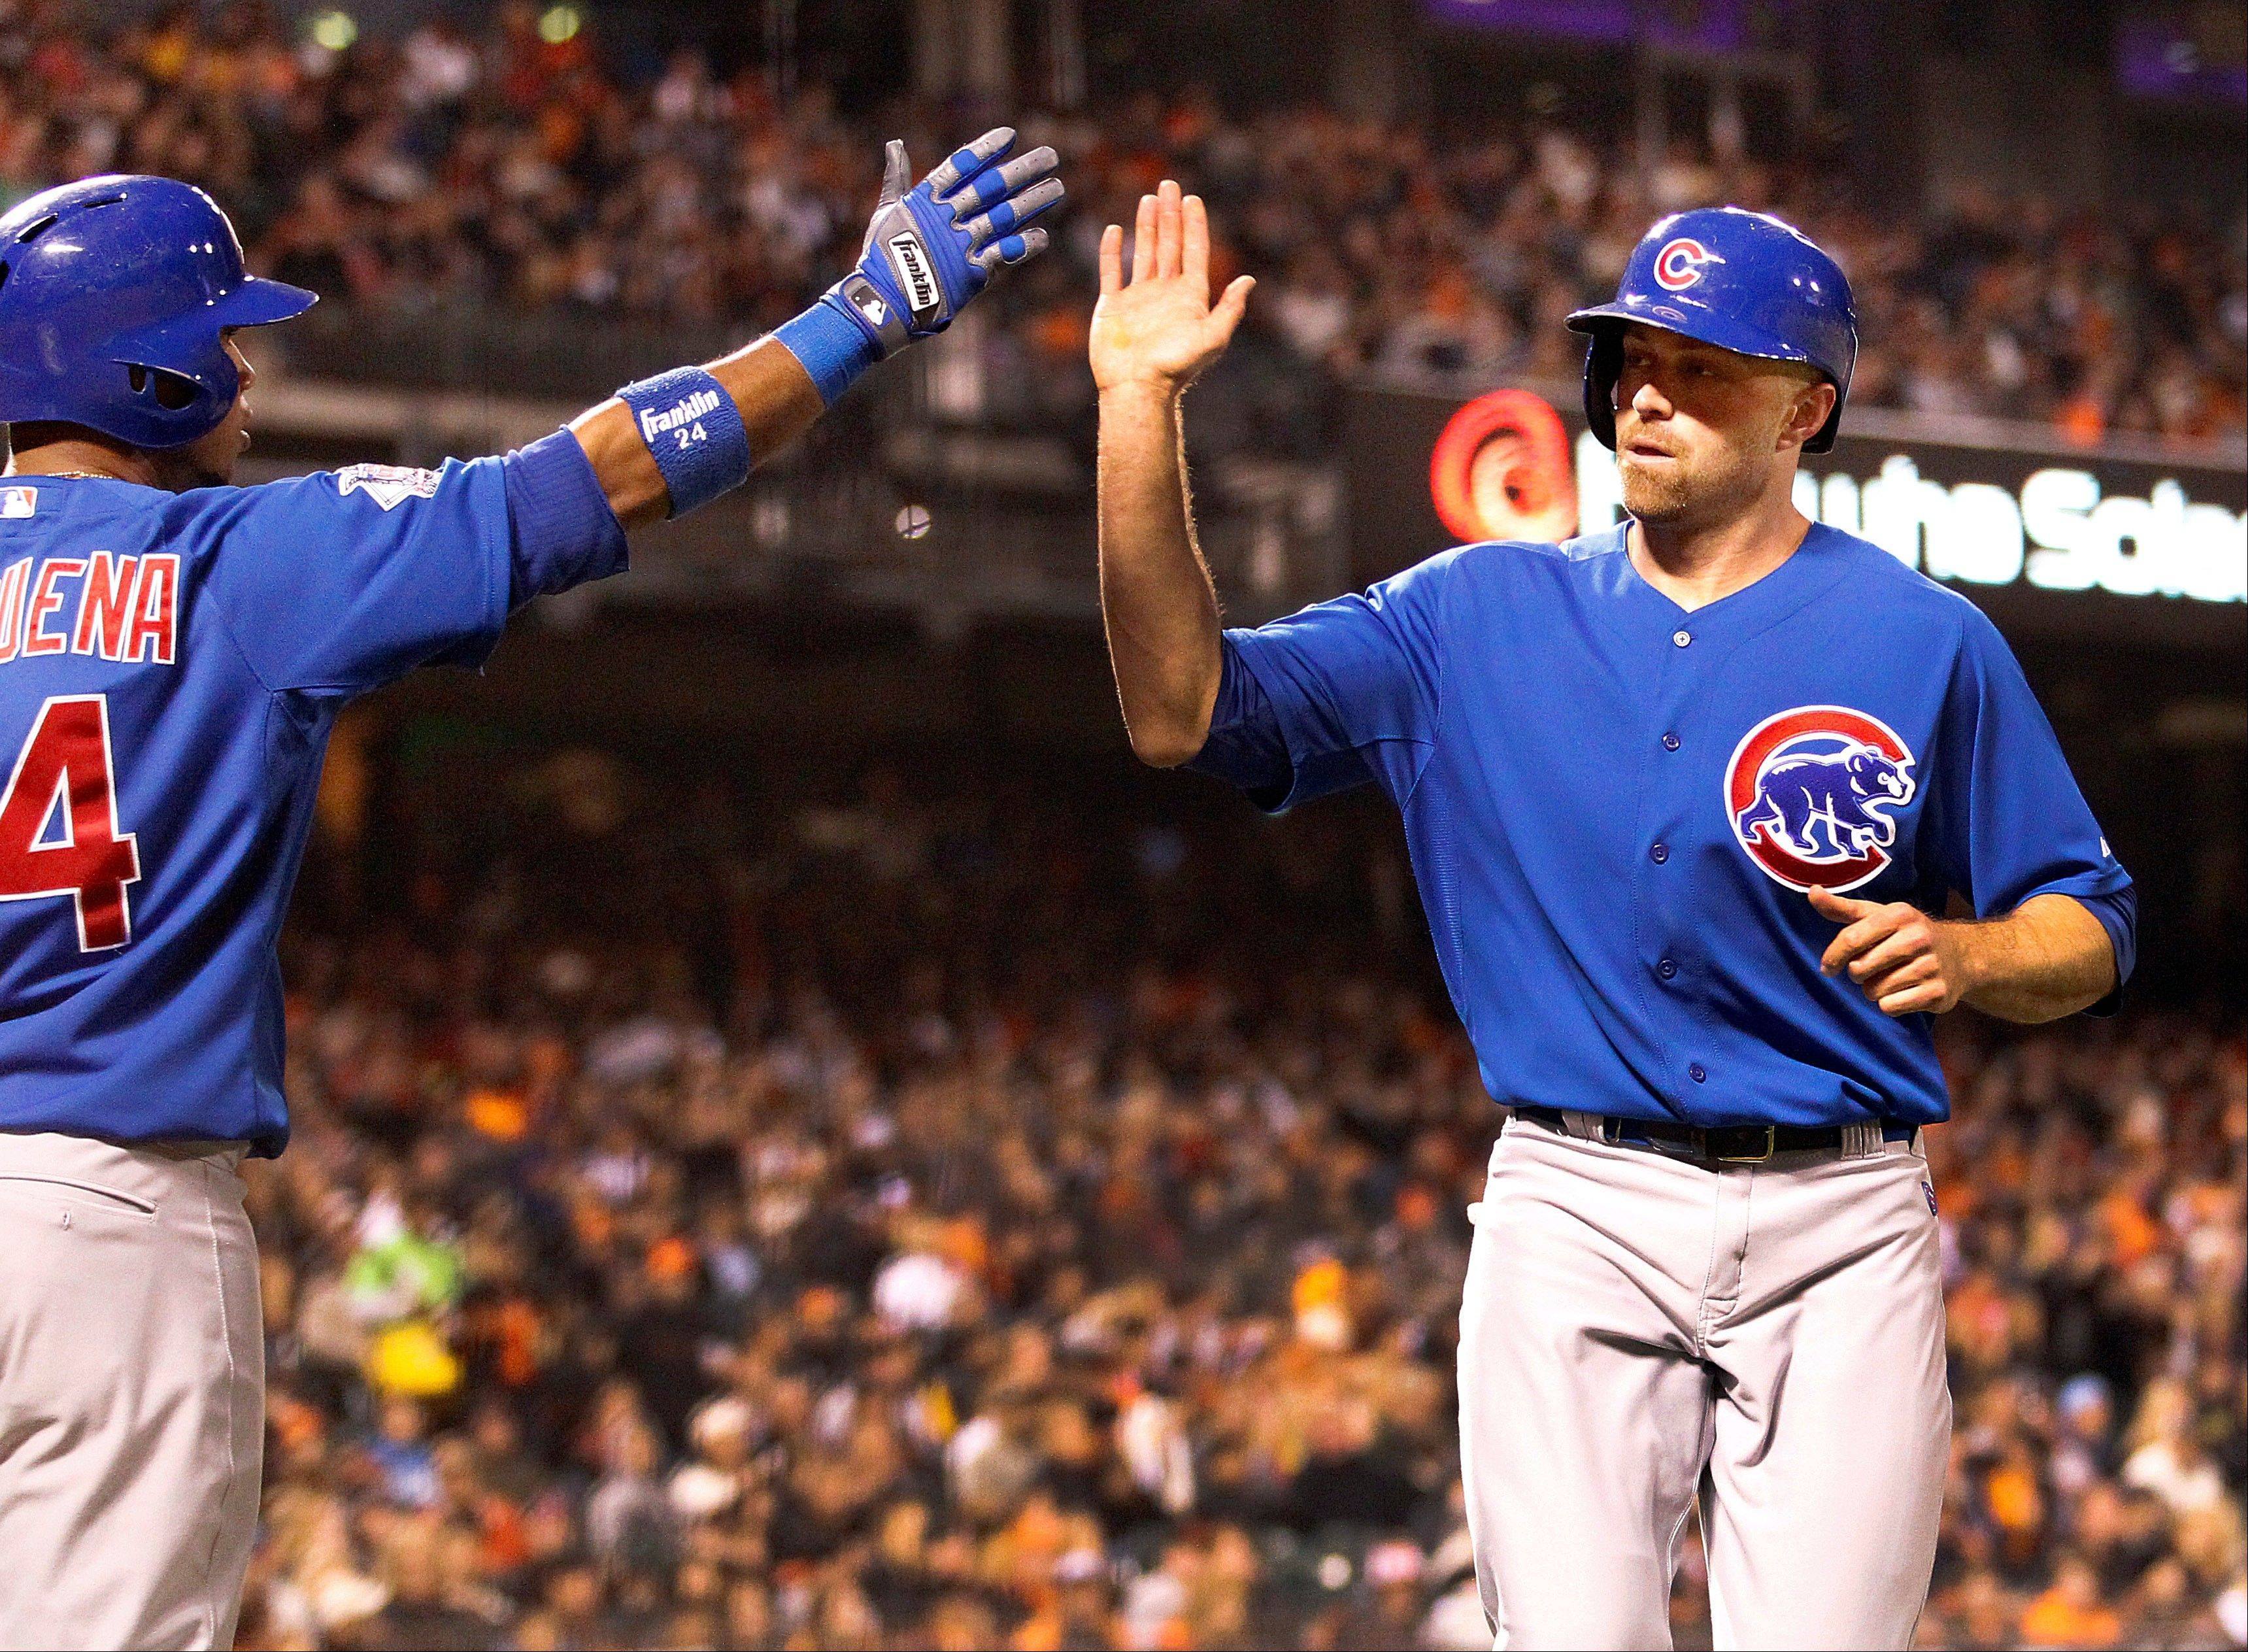 Cubs outfielder Nate Schierholtz, right, is congratulated by teammate Luis Valbuena, left, after scoring a run on a single Starlin Castro against the San Francisco Giants in Friday�s sixth inning.